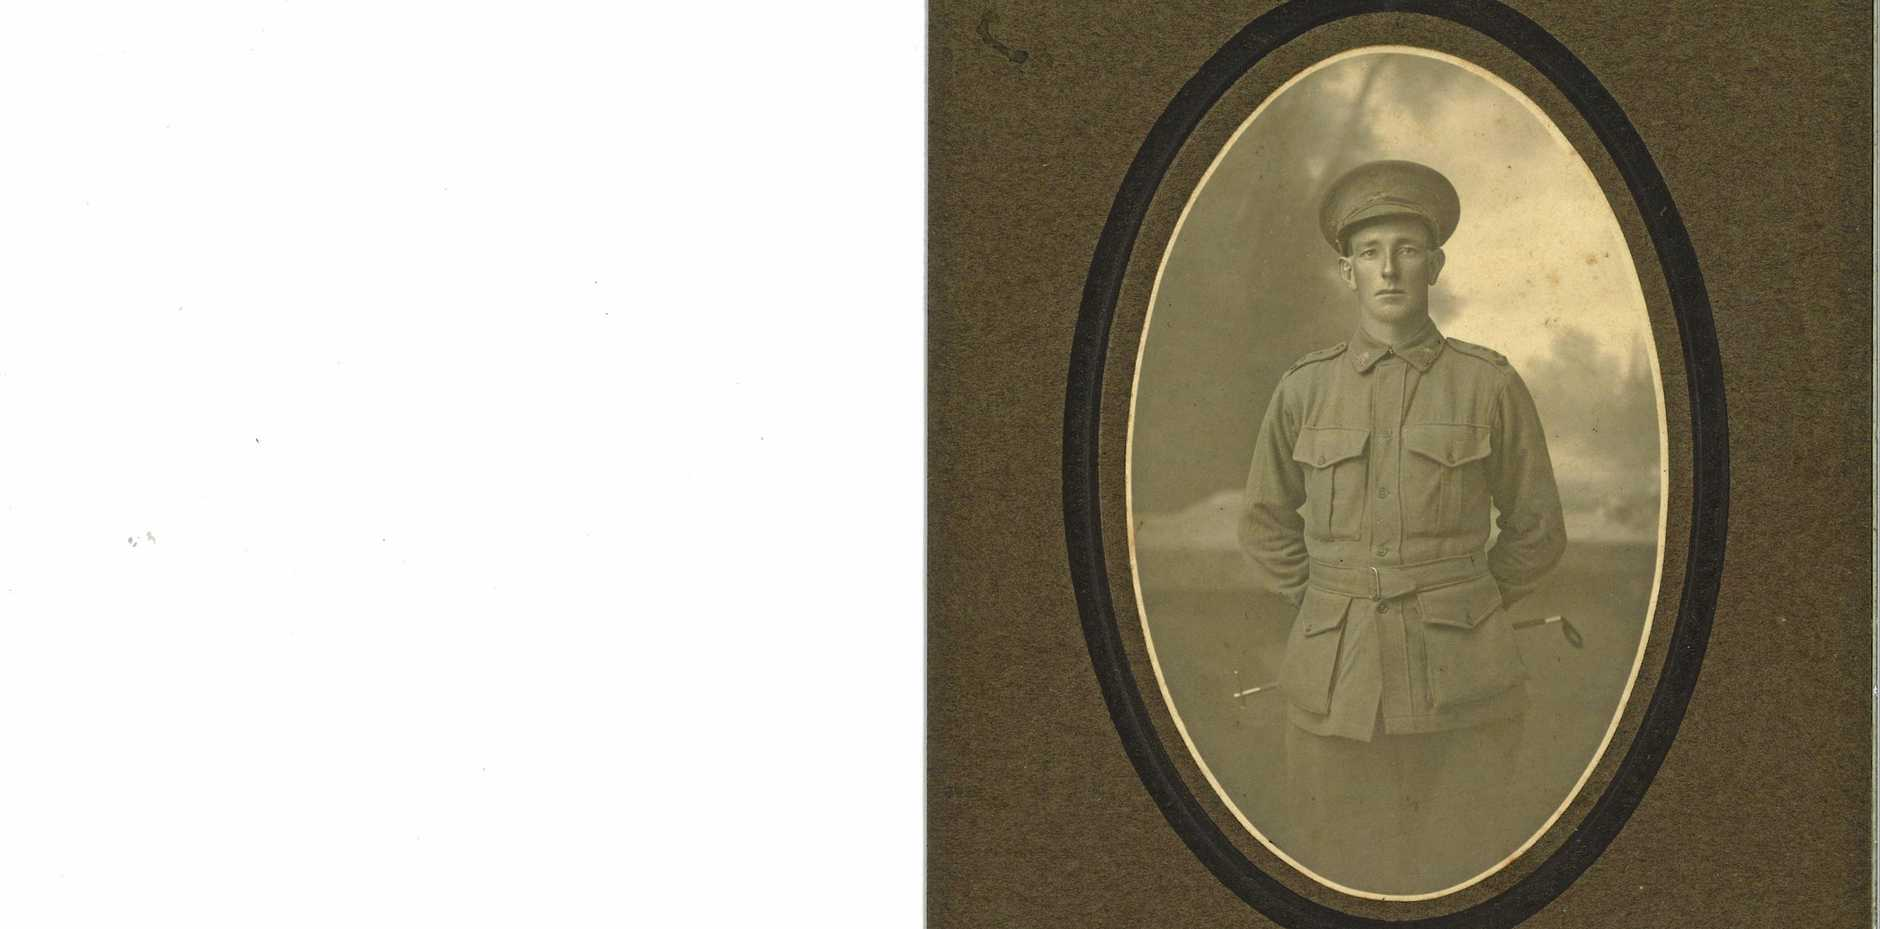 KILLED IN ACTION: Private Alexander Mark Downie.